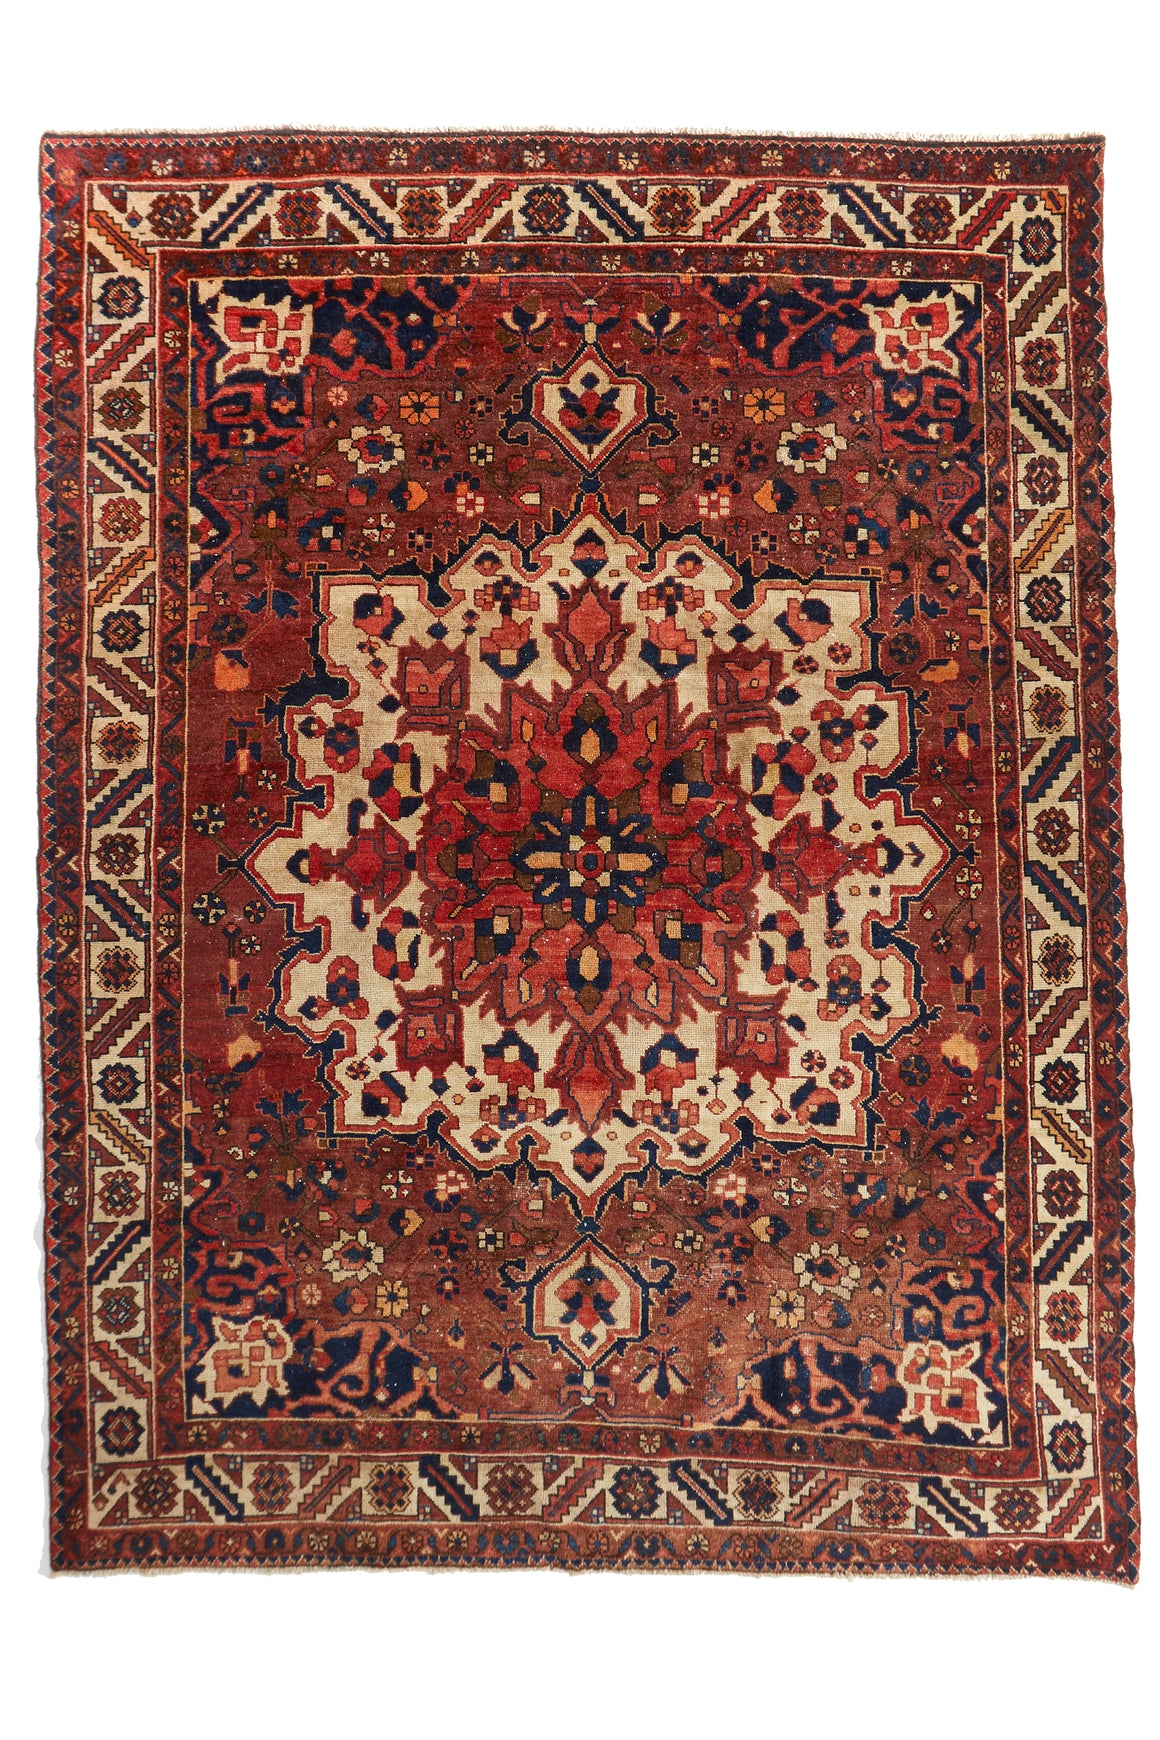 "'Firefly' Vintage Persian Rug - 7'8"" x 10'3'' - Canary Lane - Curated Textiles"